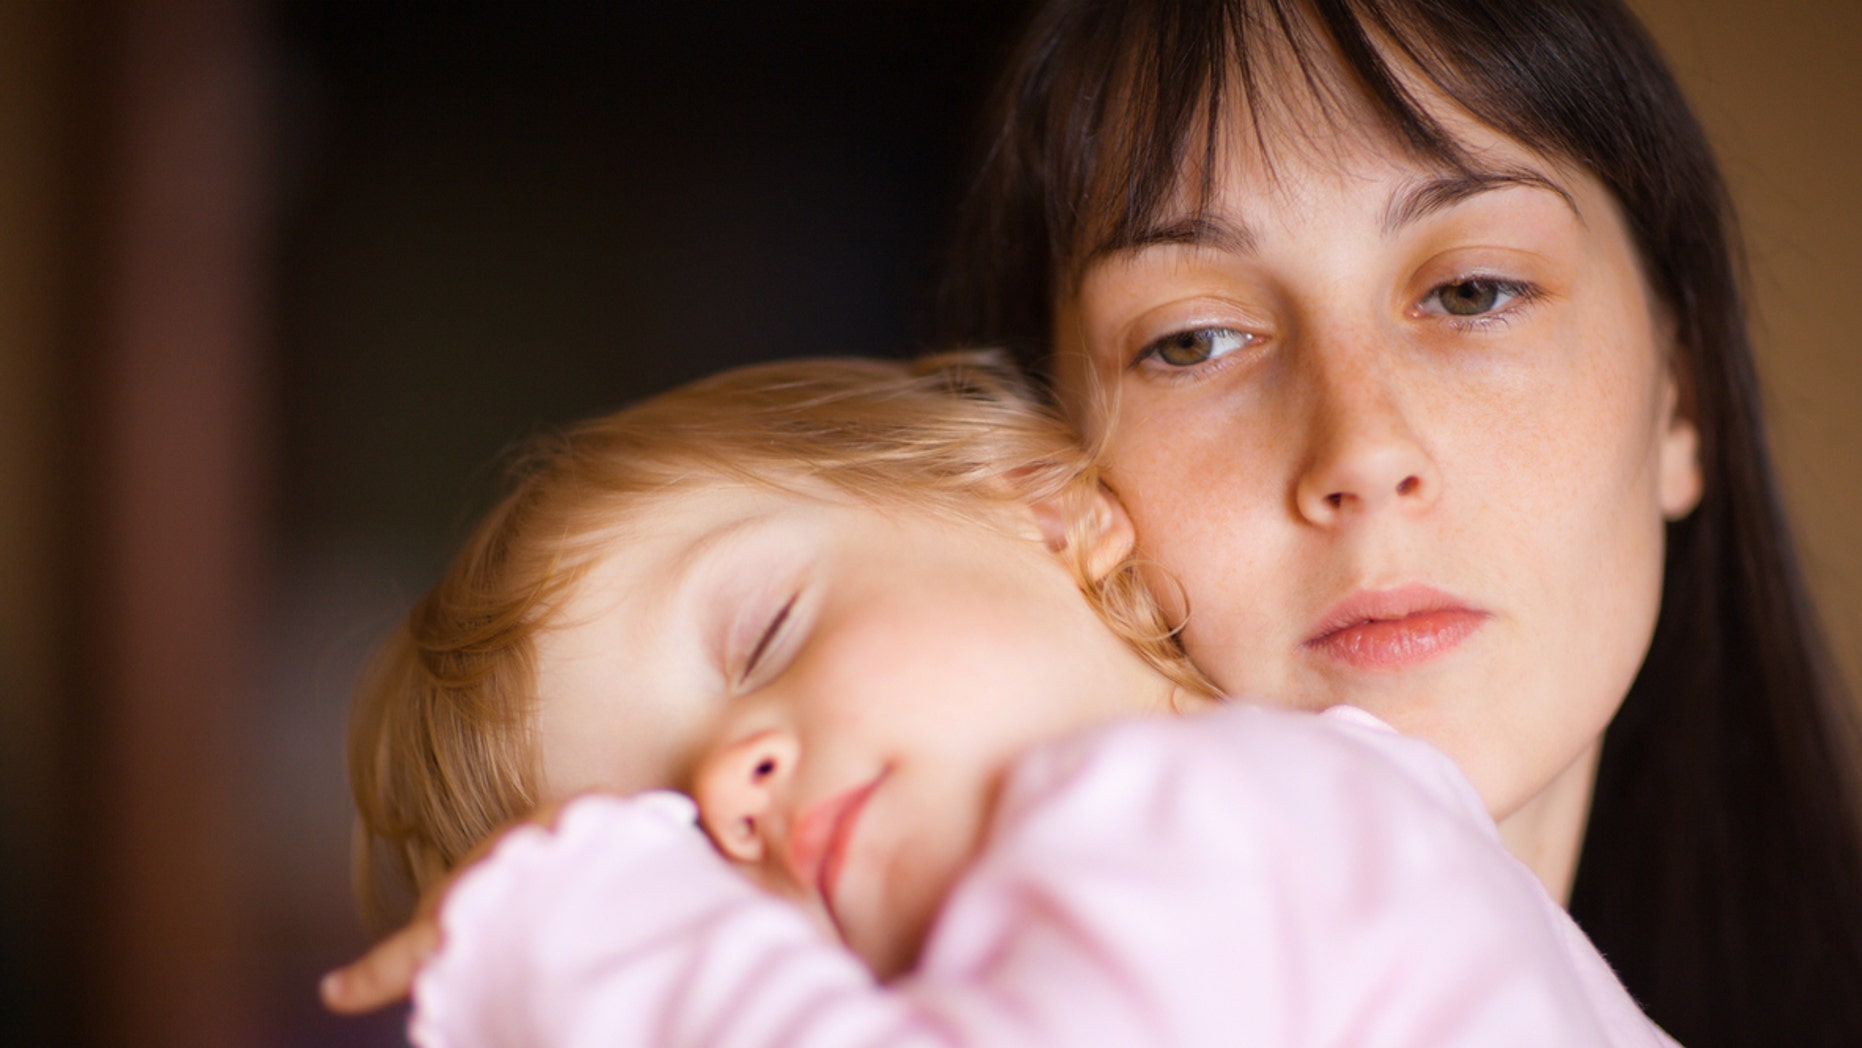 Sleepy little child with mom - shallow DOF, focus on woman's eyes